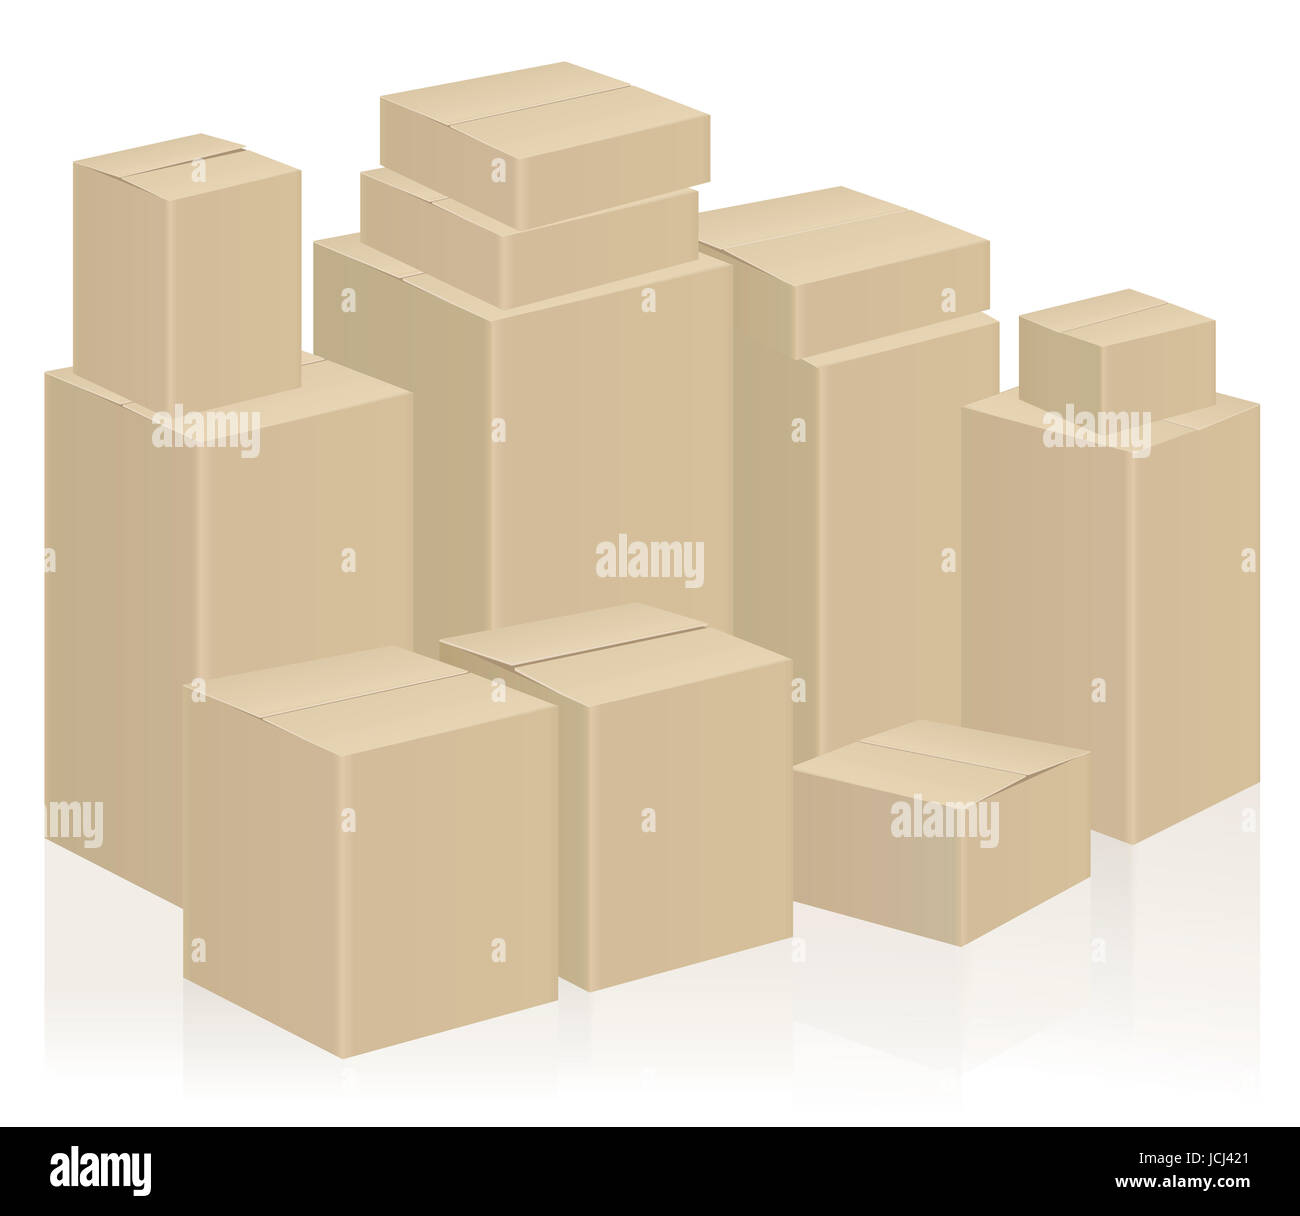 Moving boxes, symbolic for WE ARE MOVING or WE HAVE MOVED - packing case illustration on white background. Stock Photo